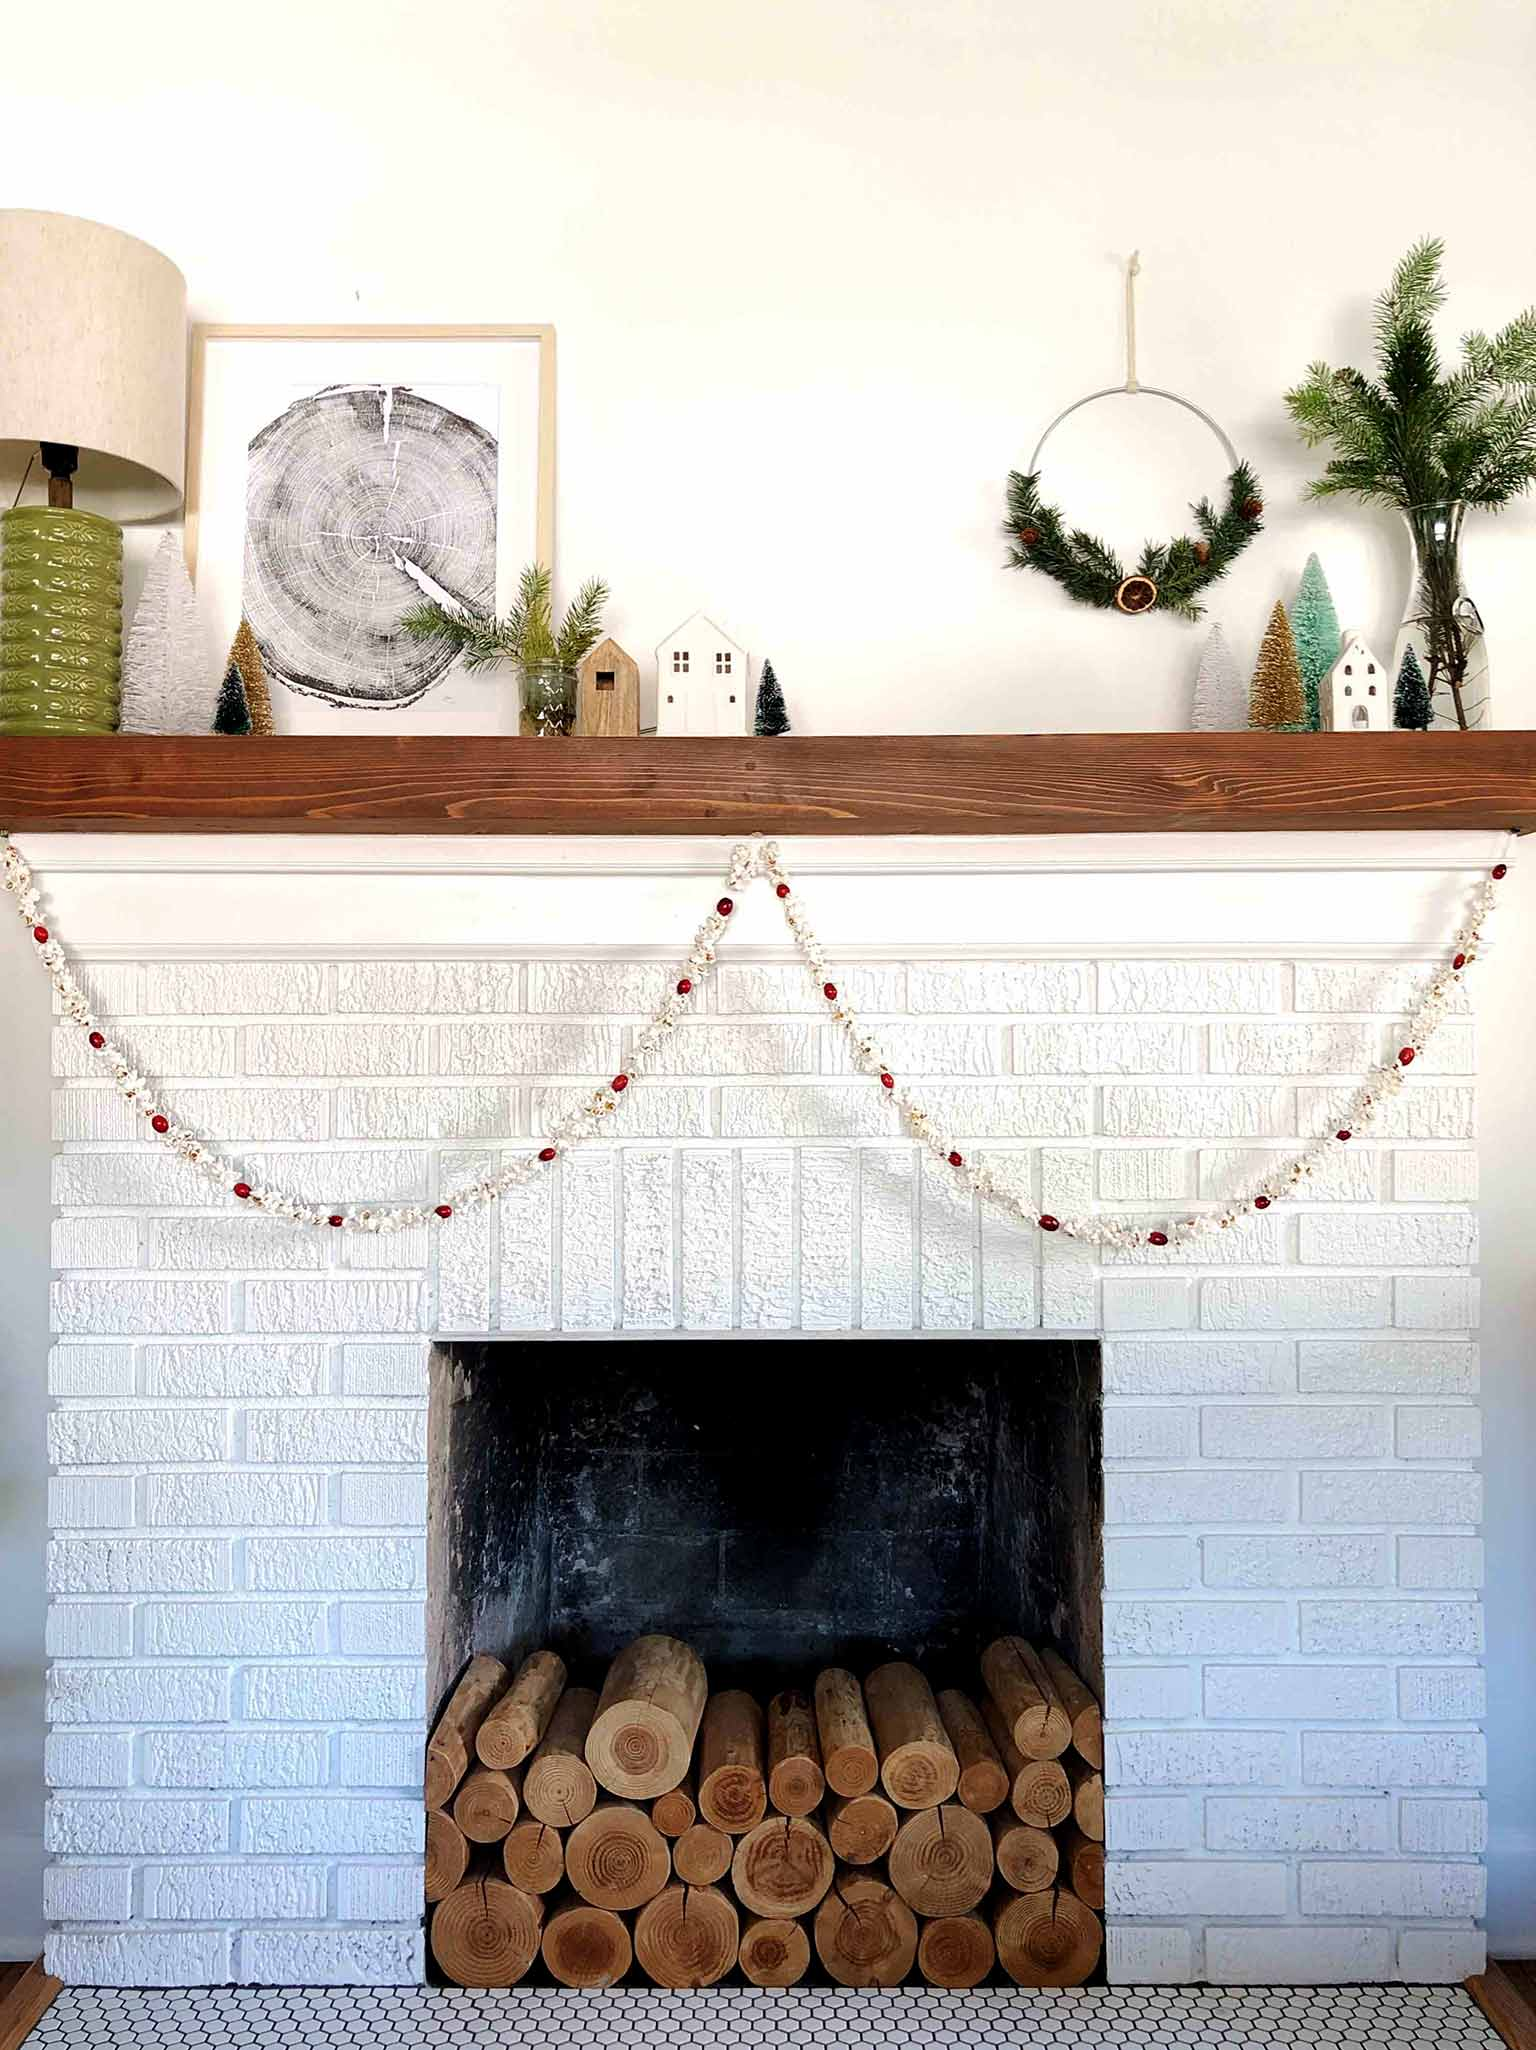 popcorn and cranberry garland on mantel